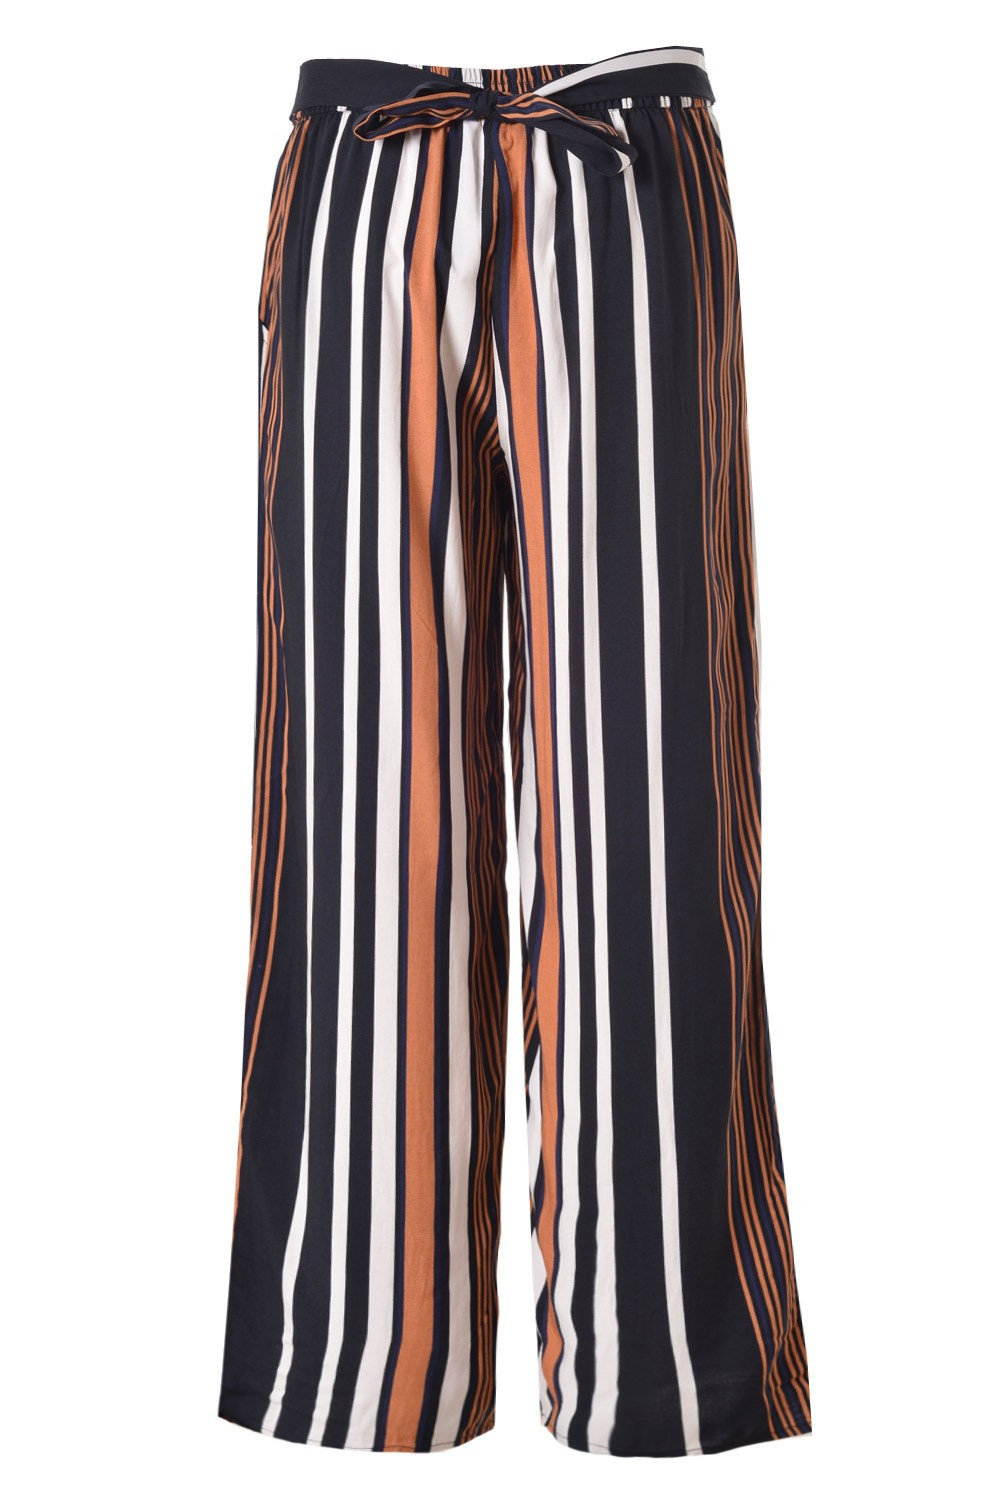 Only Nova Stripe Palazzo Pants in Multi